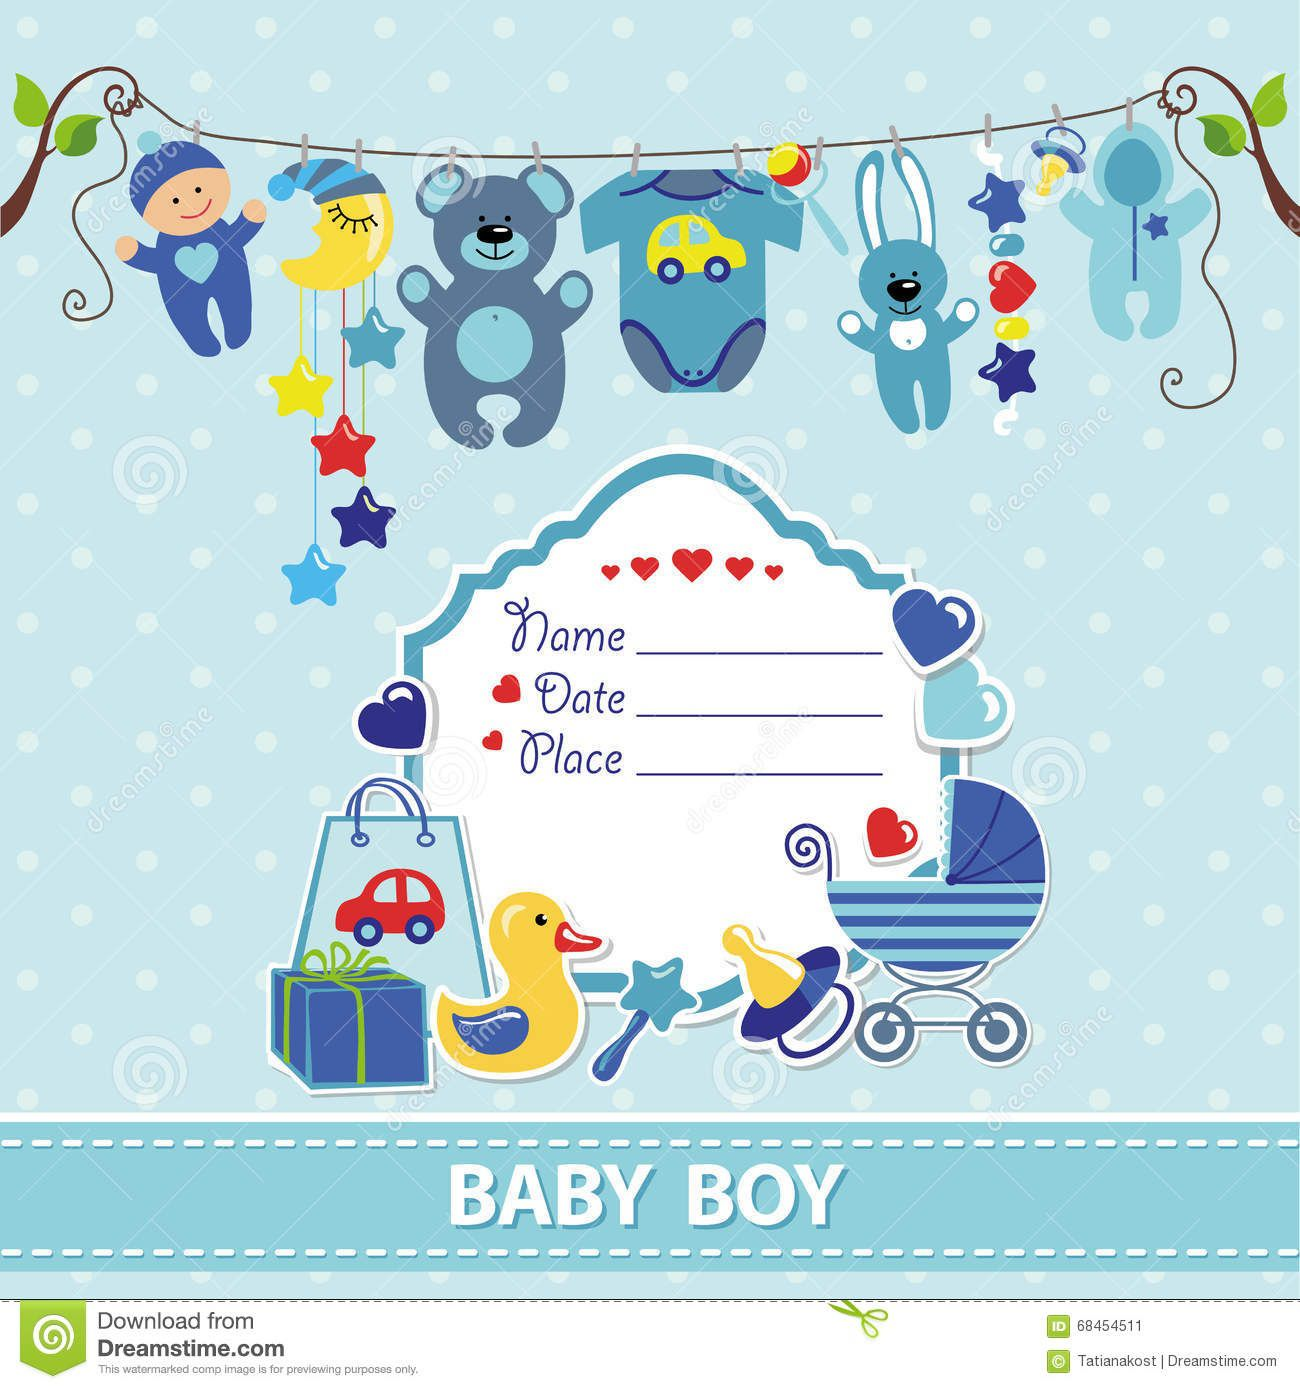 011 Unforgettable Free Baby Shower Invitation Template For Boy Idea Full